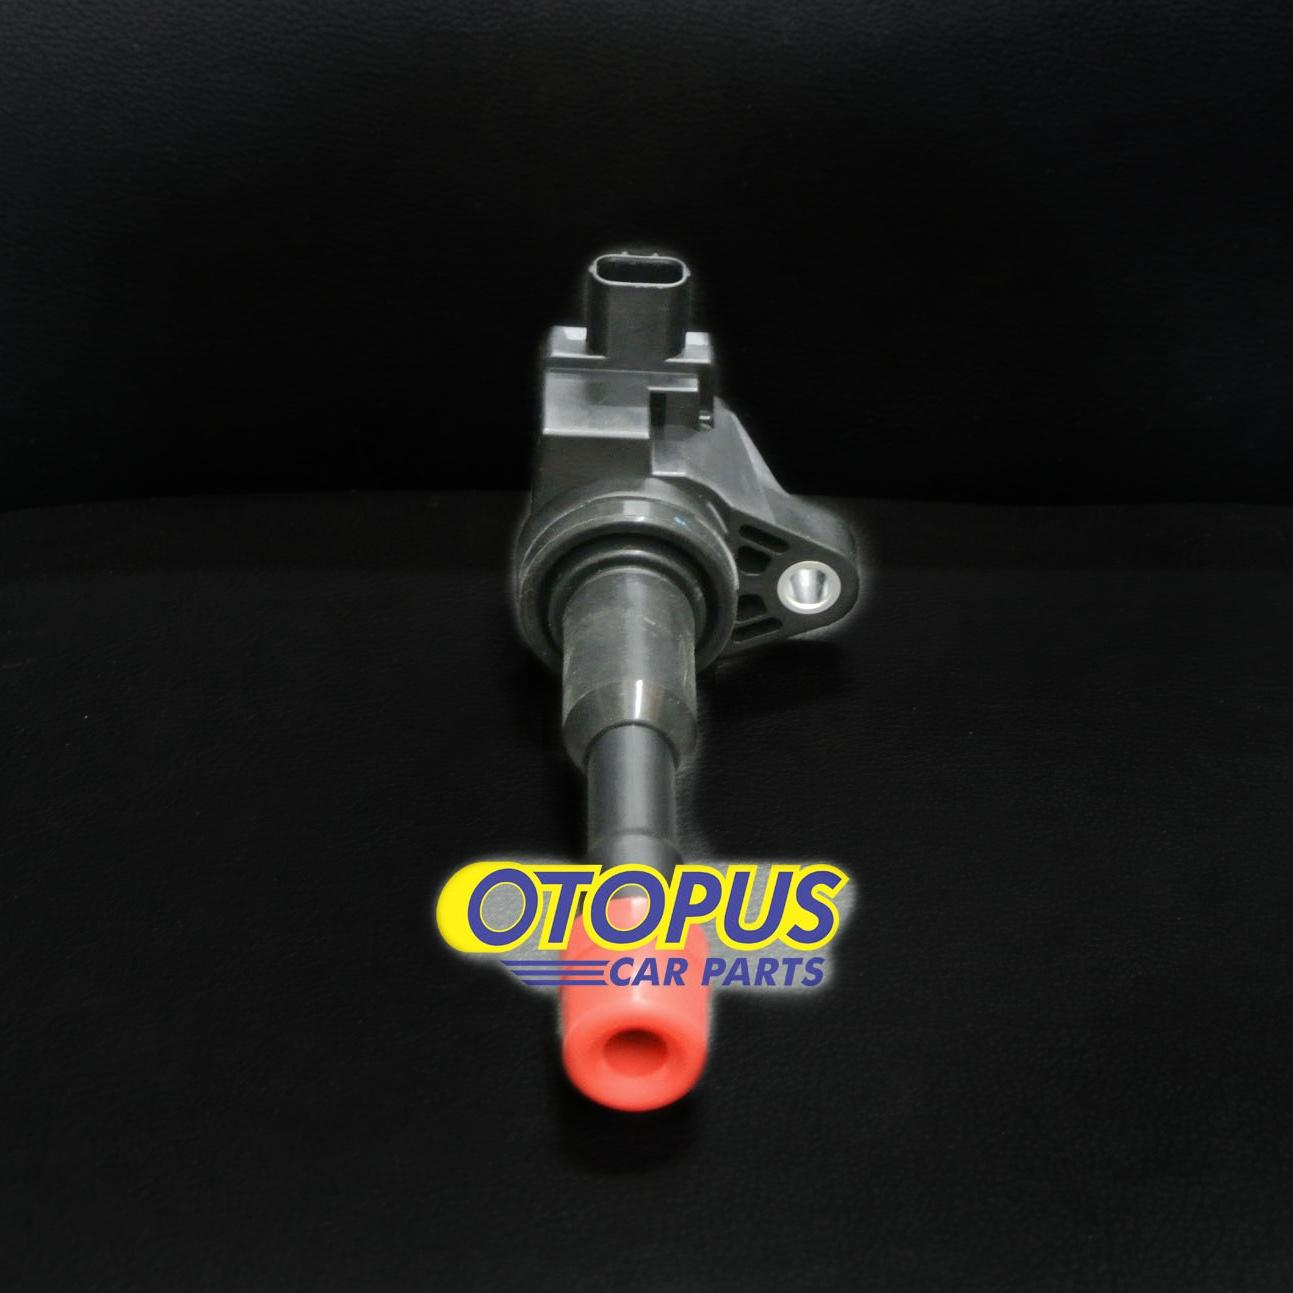 Coil Honda Jazz Idsi/new City 2004-2007 30520-Pwa-S01 Koil/desiklos Jazz Idsi/new City By Otopus Carparts.